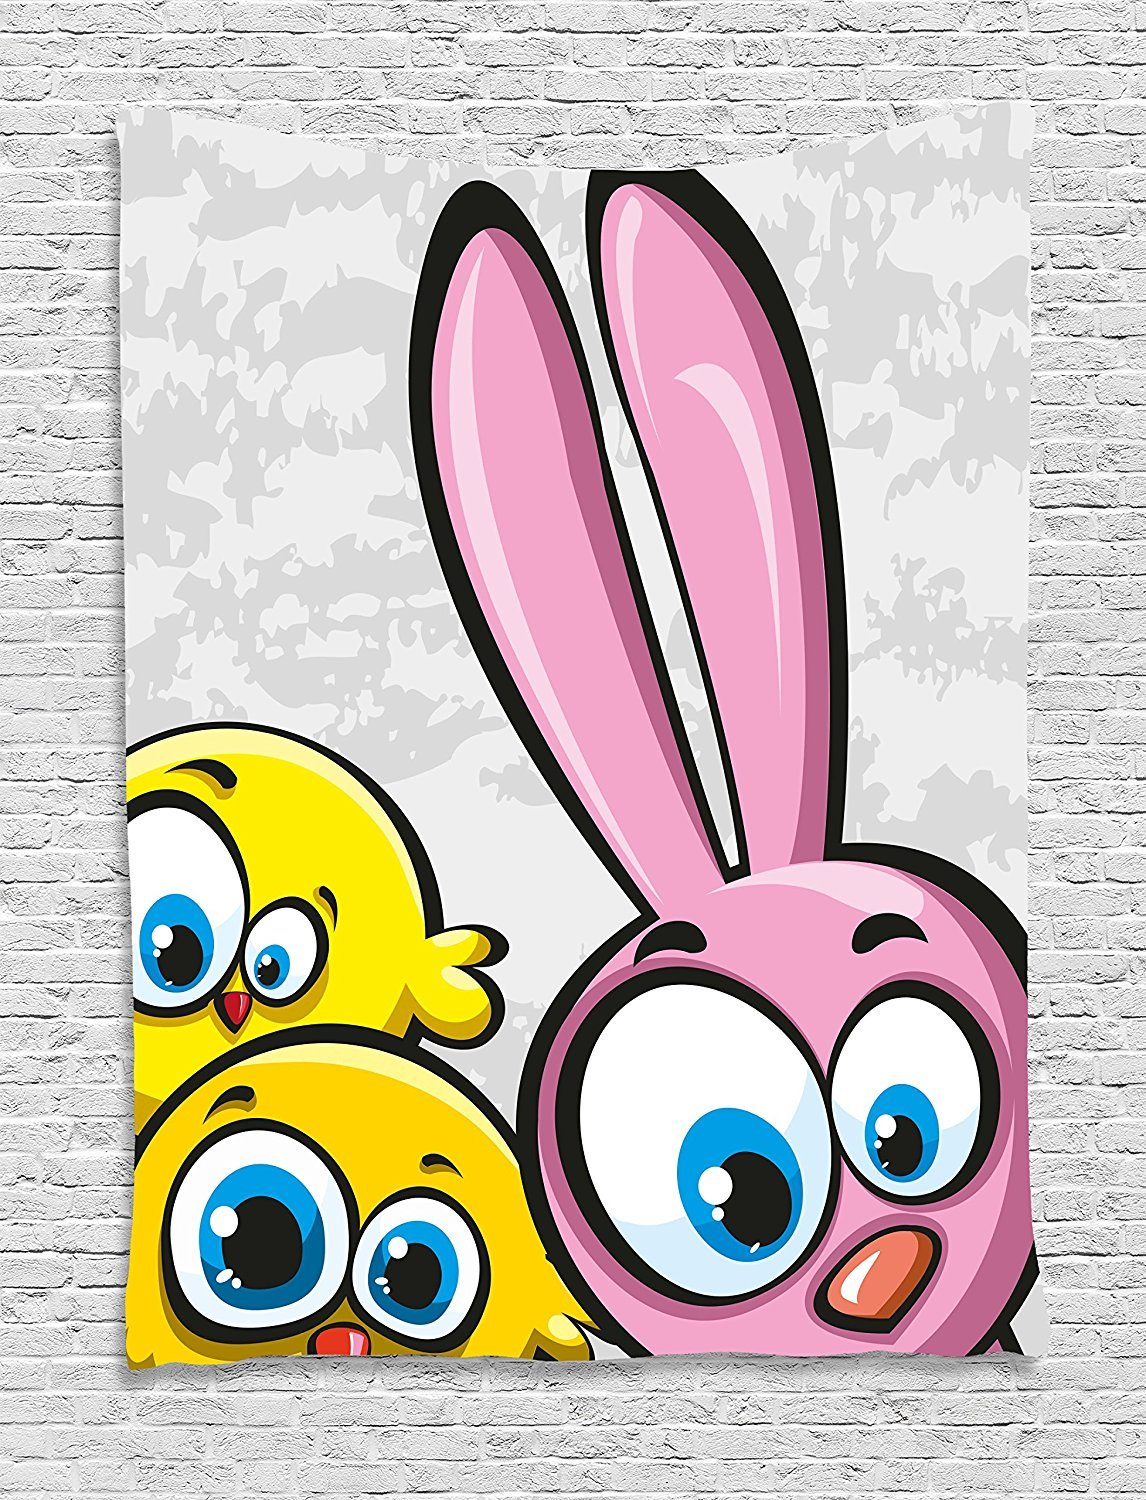 asddcdfdd Funny Tapestry, Bunny with Chickens Humor Childish Celebration Rabbit Animal Characters Image, Wall Hanging for Bedroom Living Room Dorm, 60 W X 80 L Inches, Yellow Pink Dust